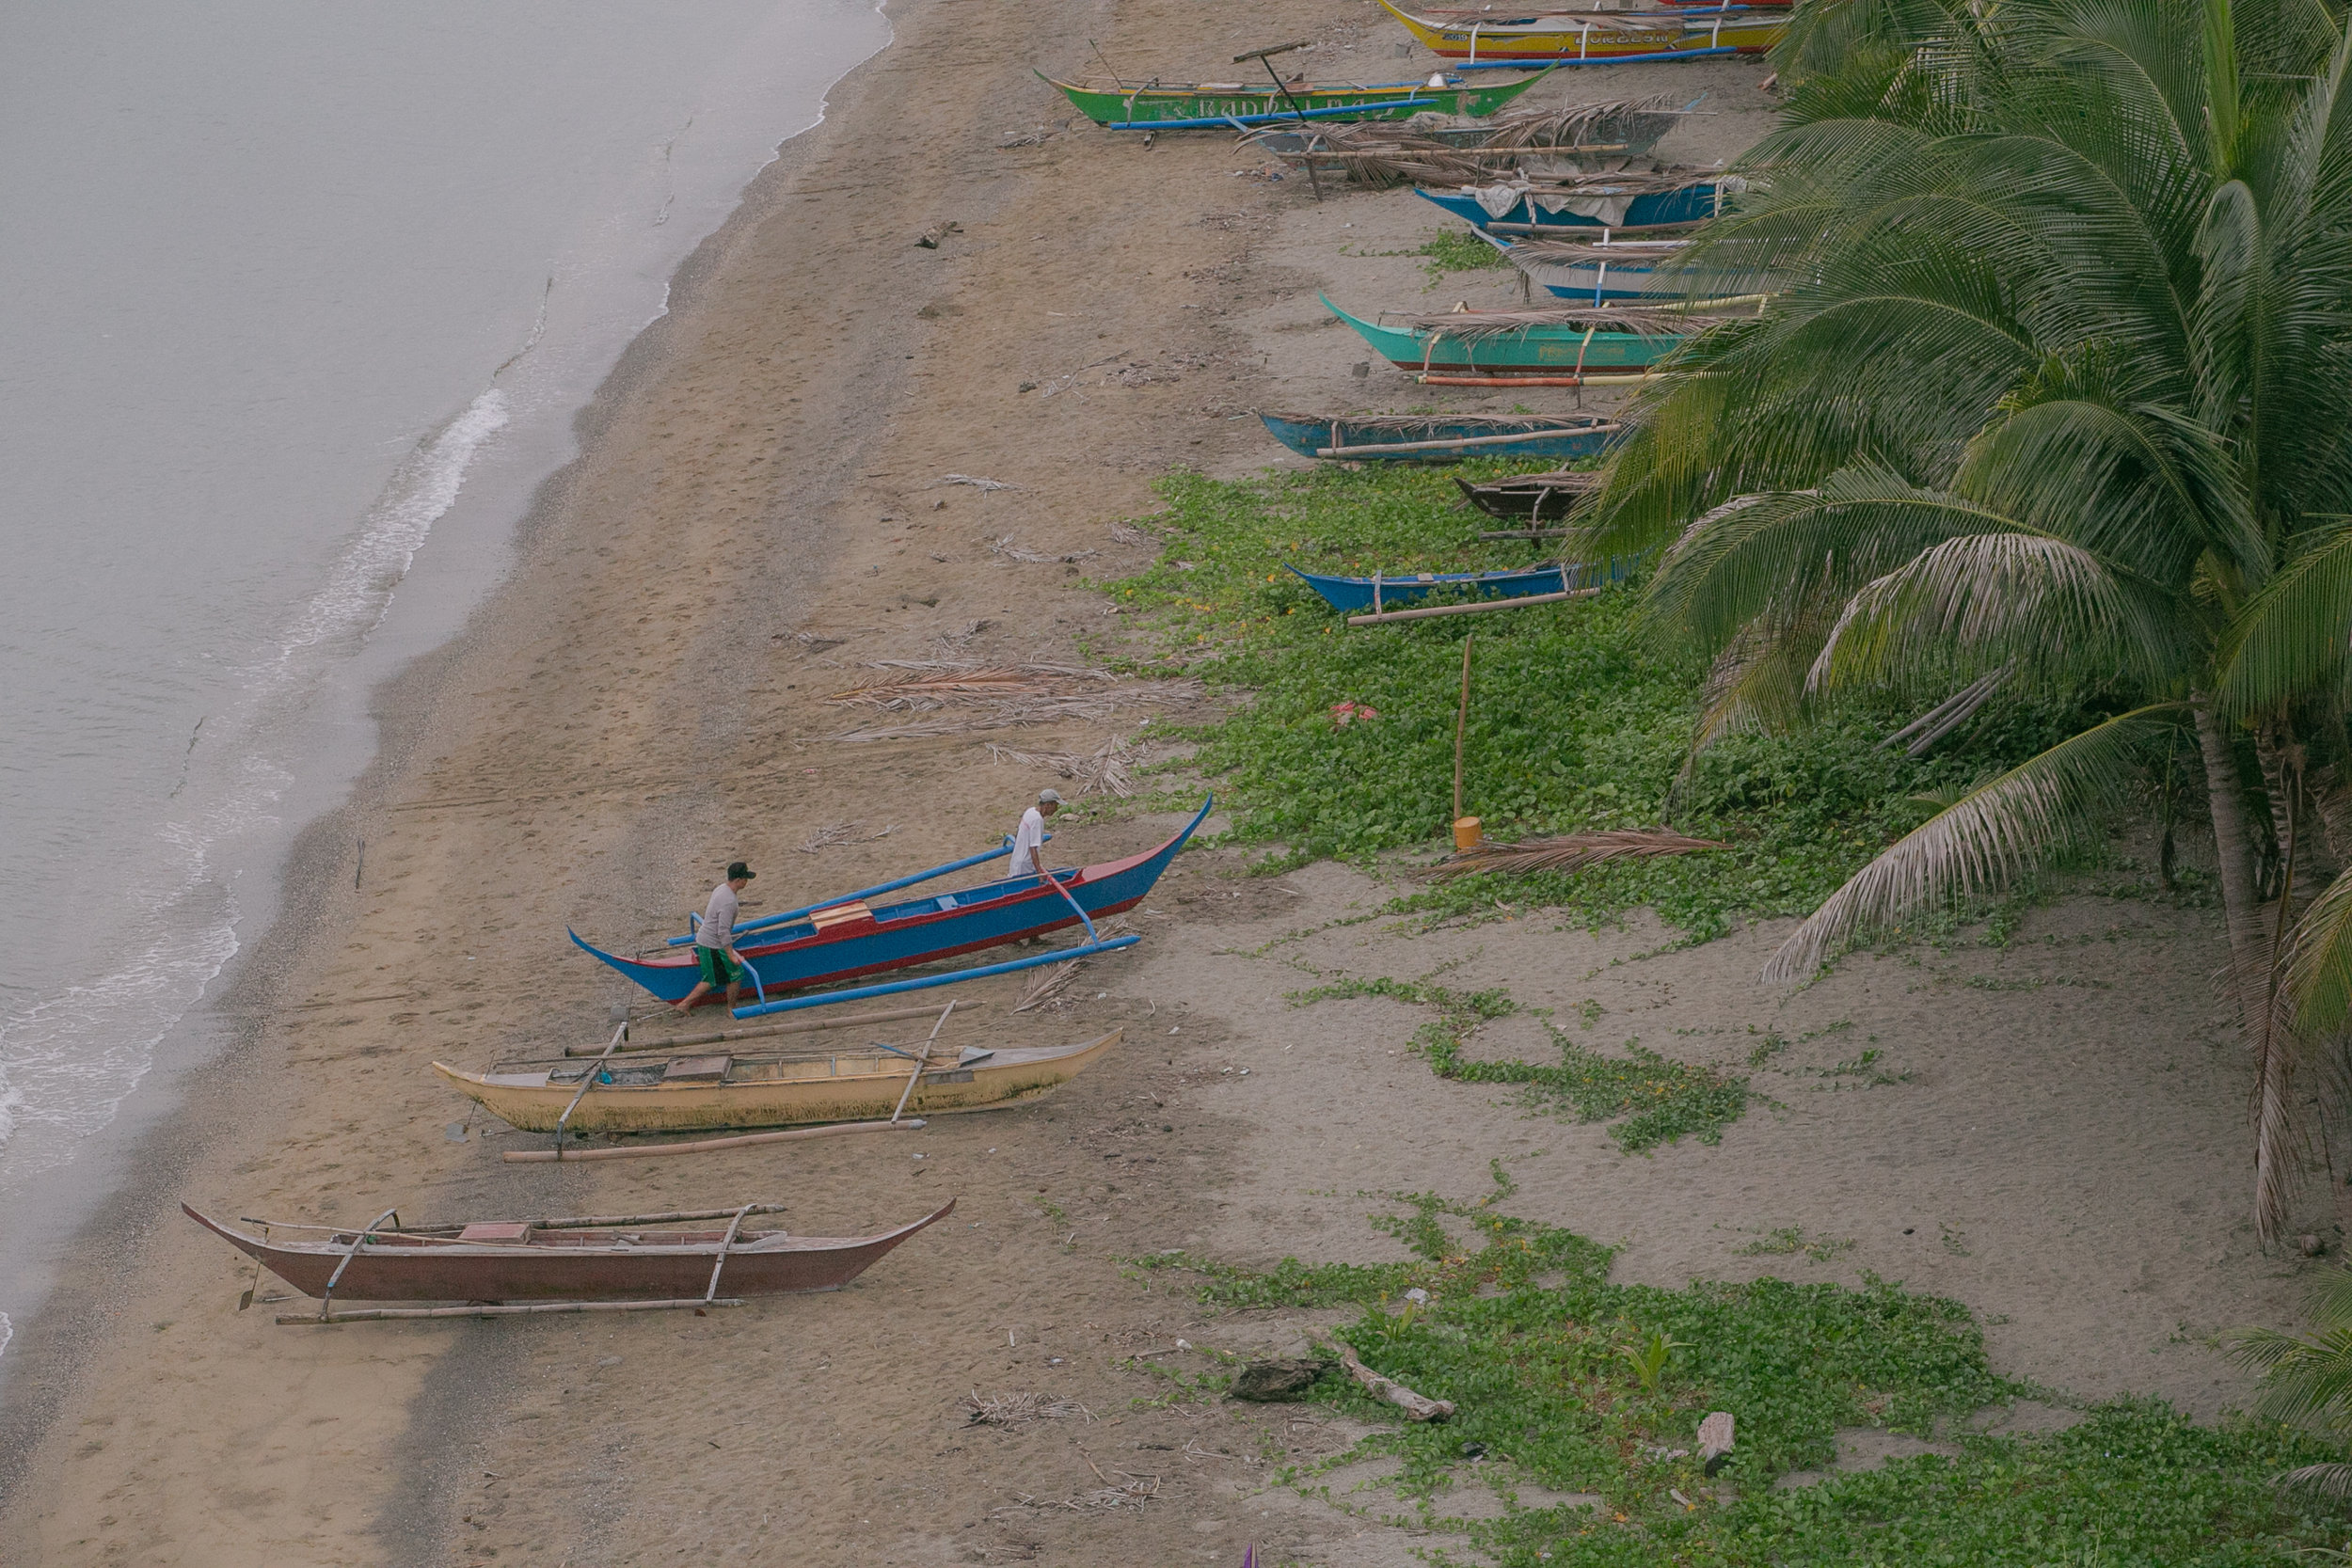 Fishermen park their boat at the beach in Punta Ilag, Oriental Mindoro. Punta Ilag is planning to expand its no-take zone from 12 hectares to 16 hectares.